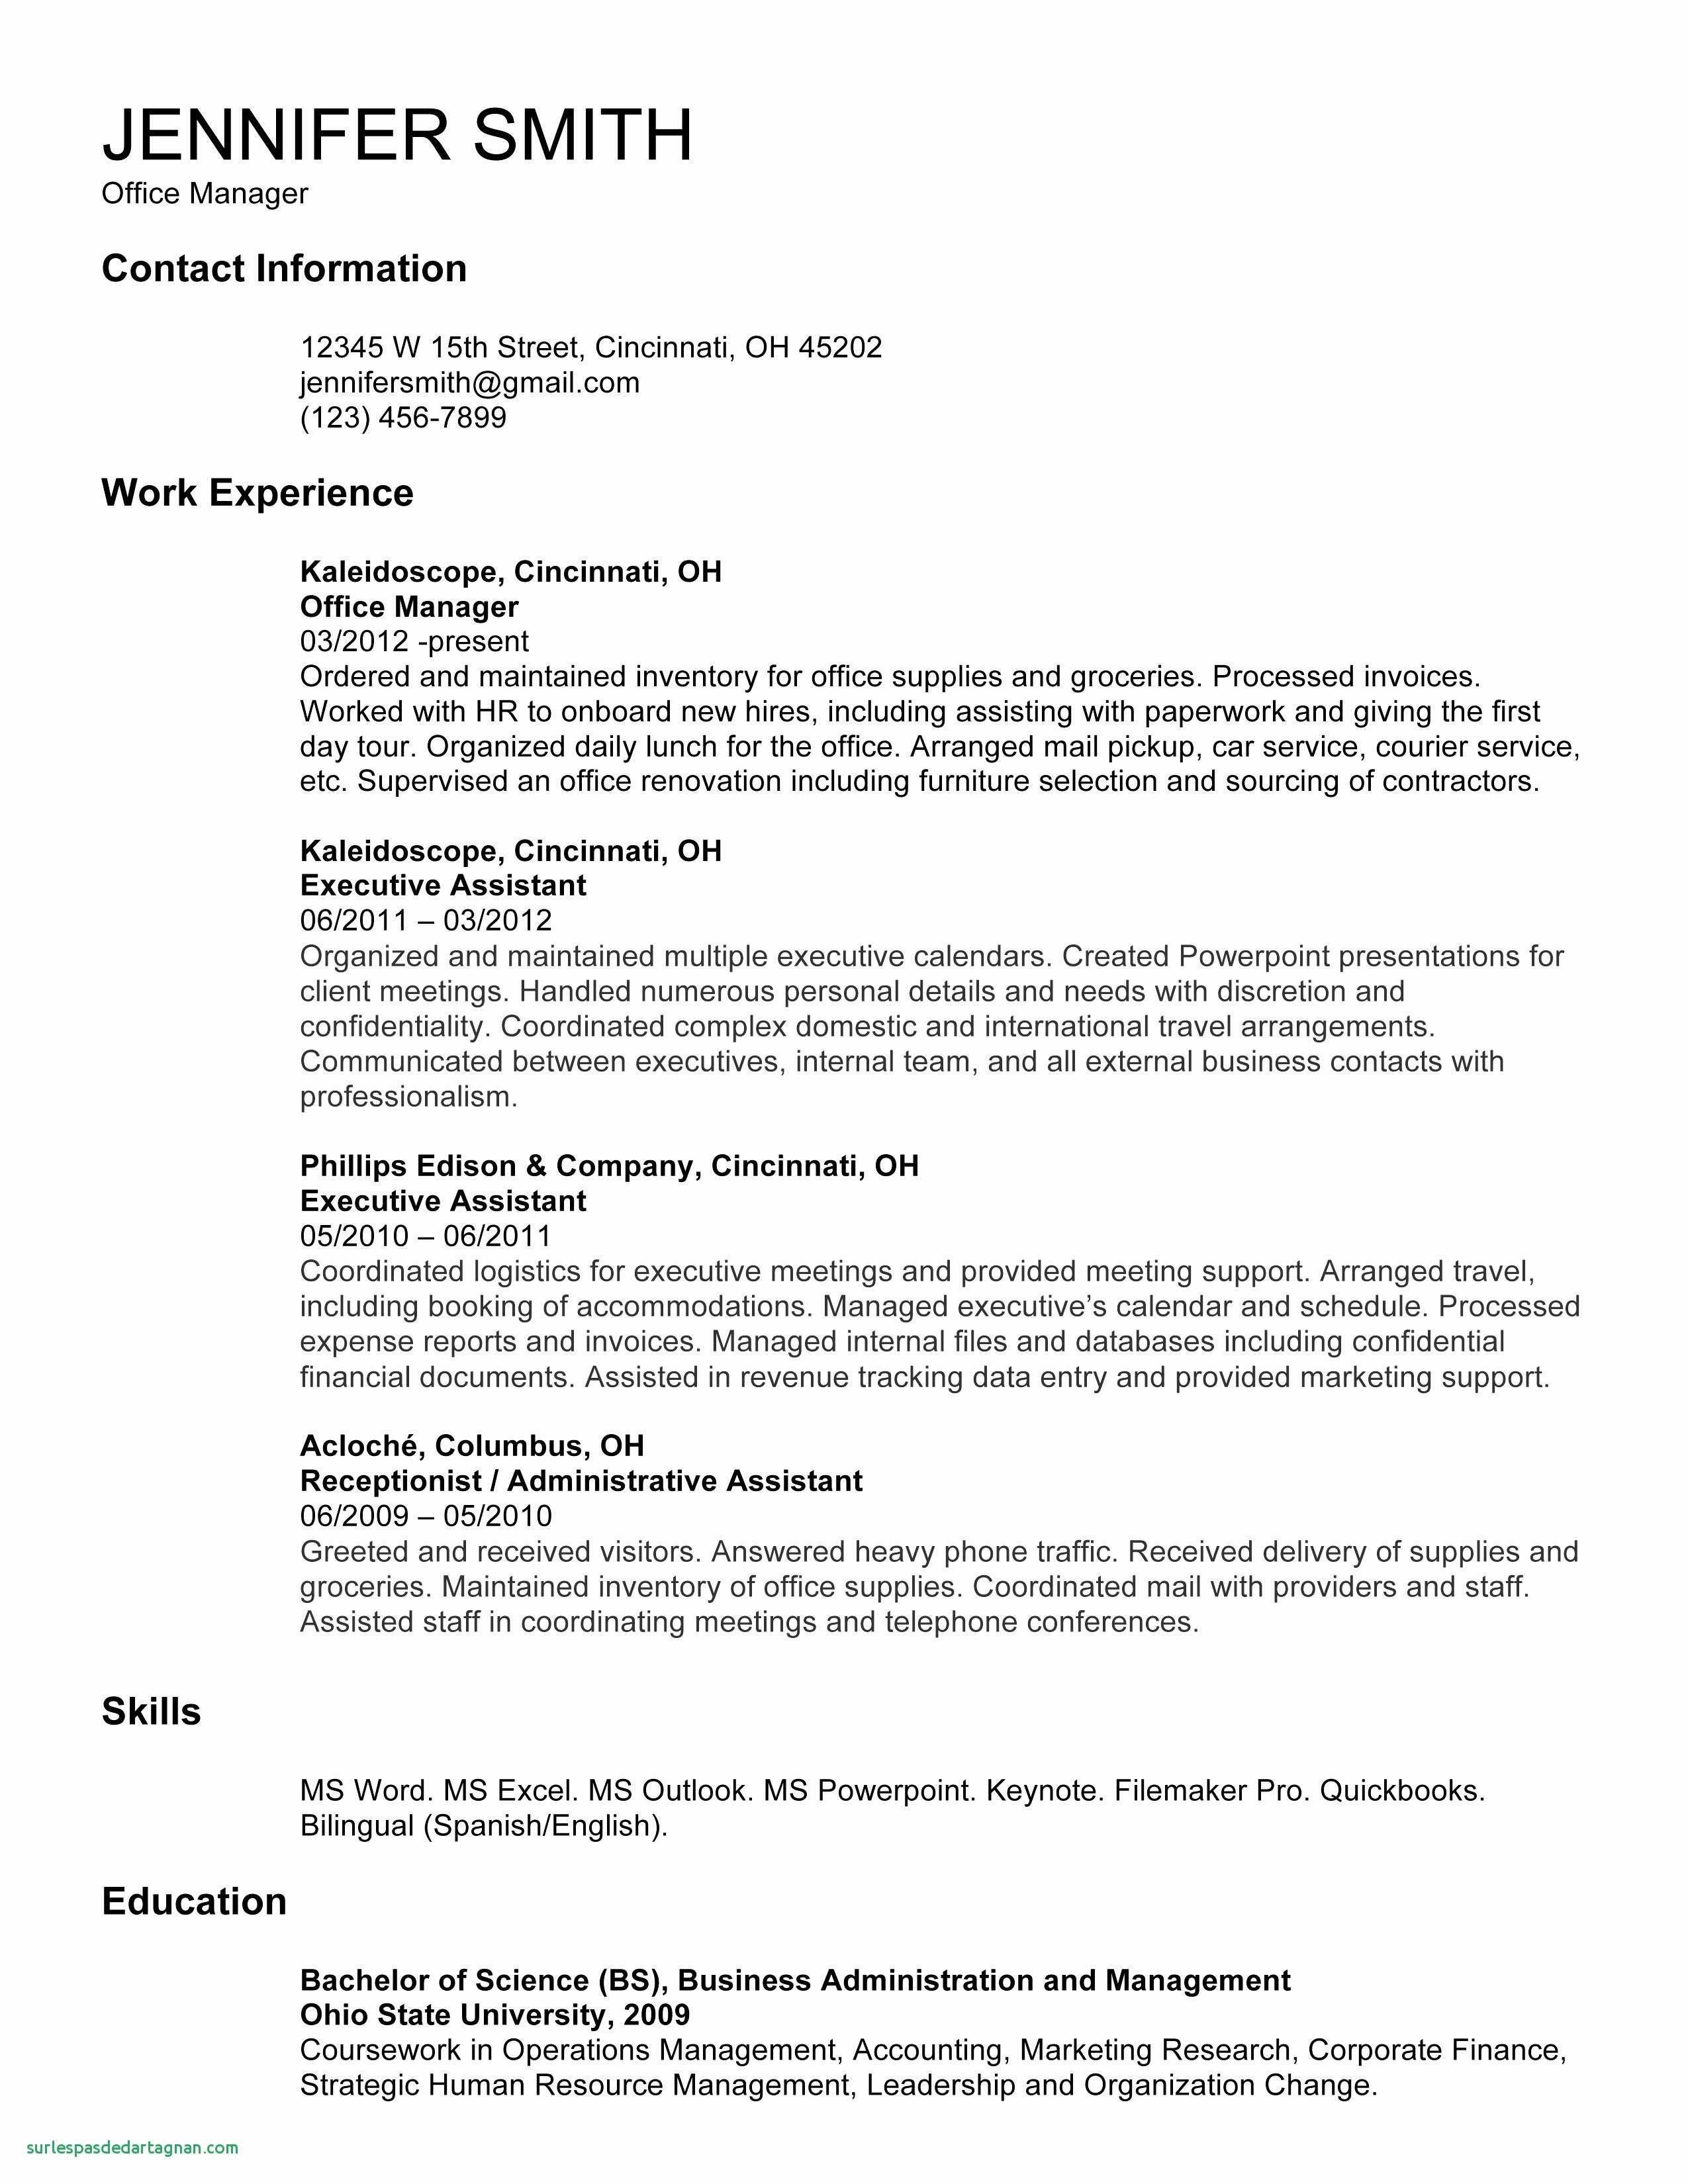 Supply Chain Management Resume Template - Resume Template Download Free Unique ¢Ë†Å¡ Resume Template Download